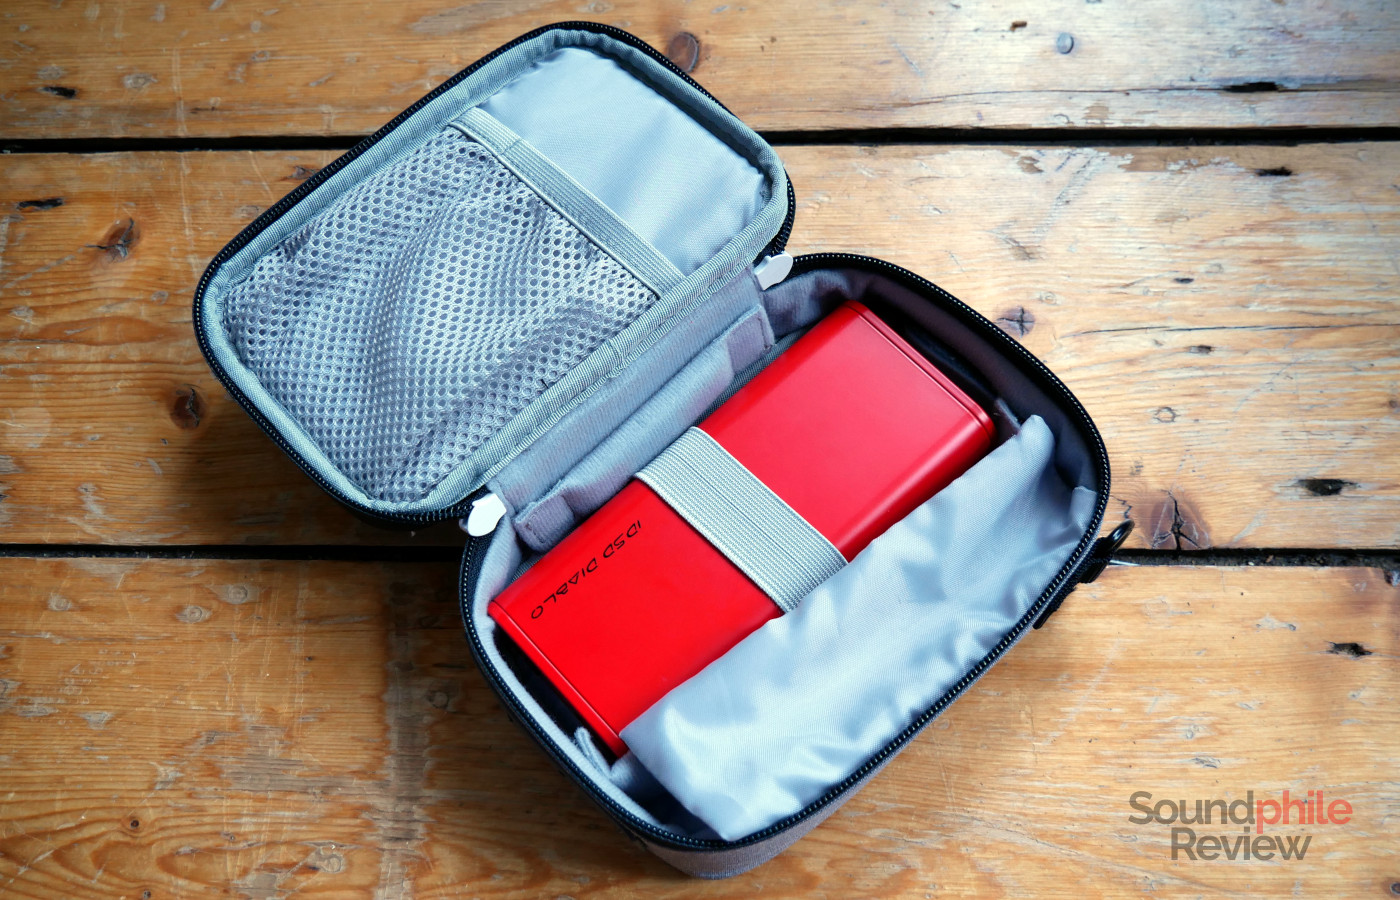 iFi iTraveller review